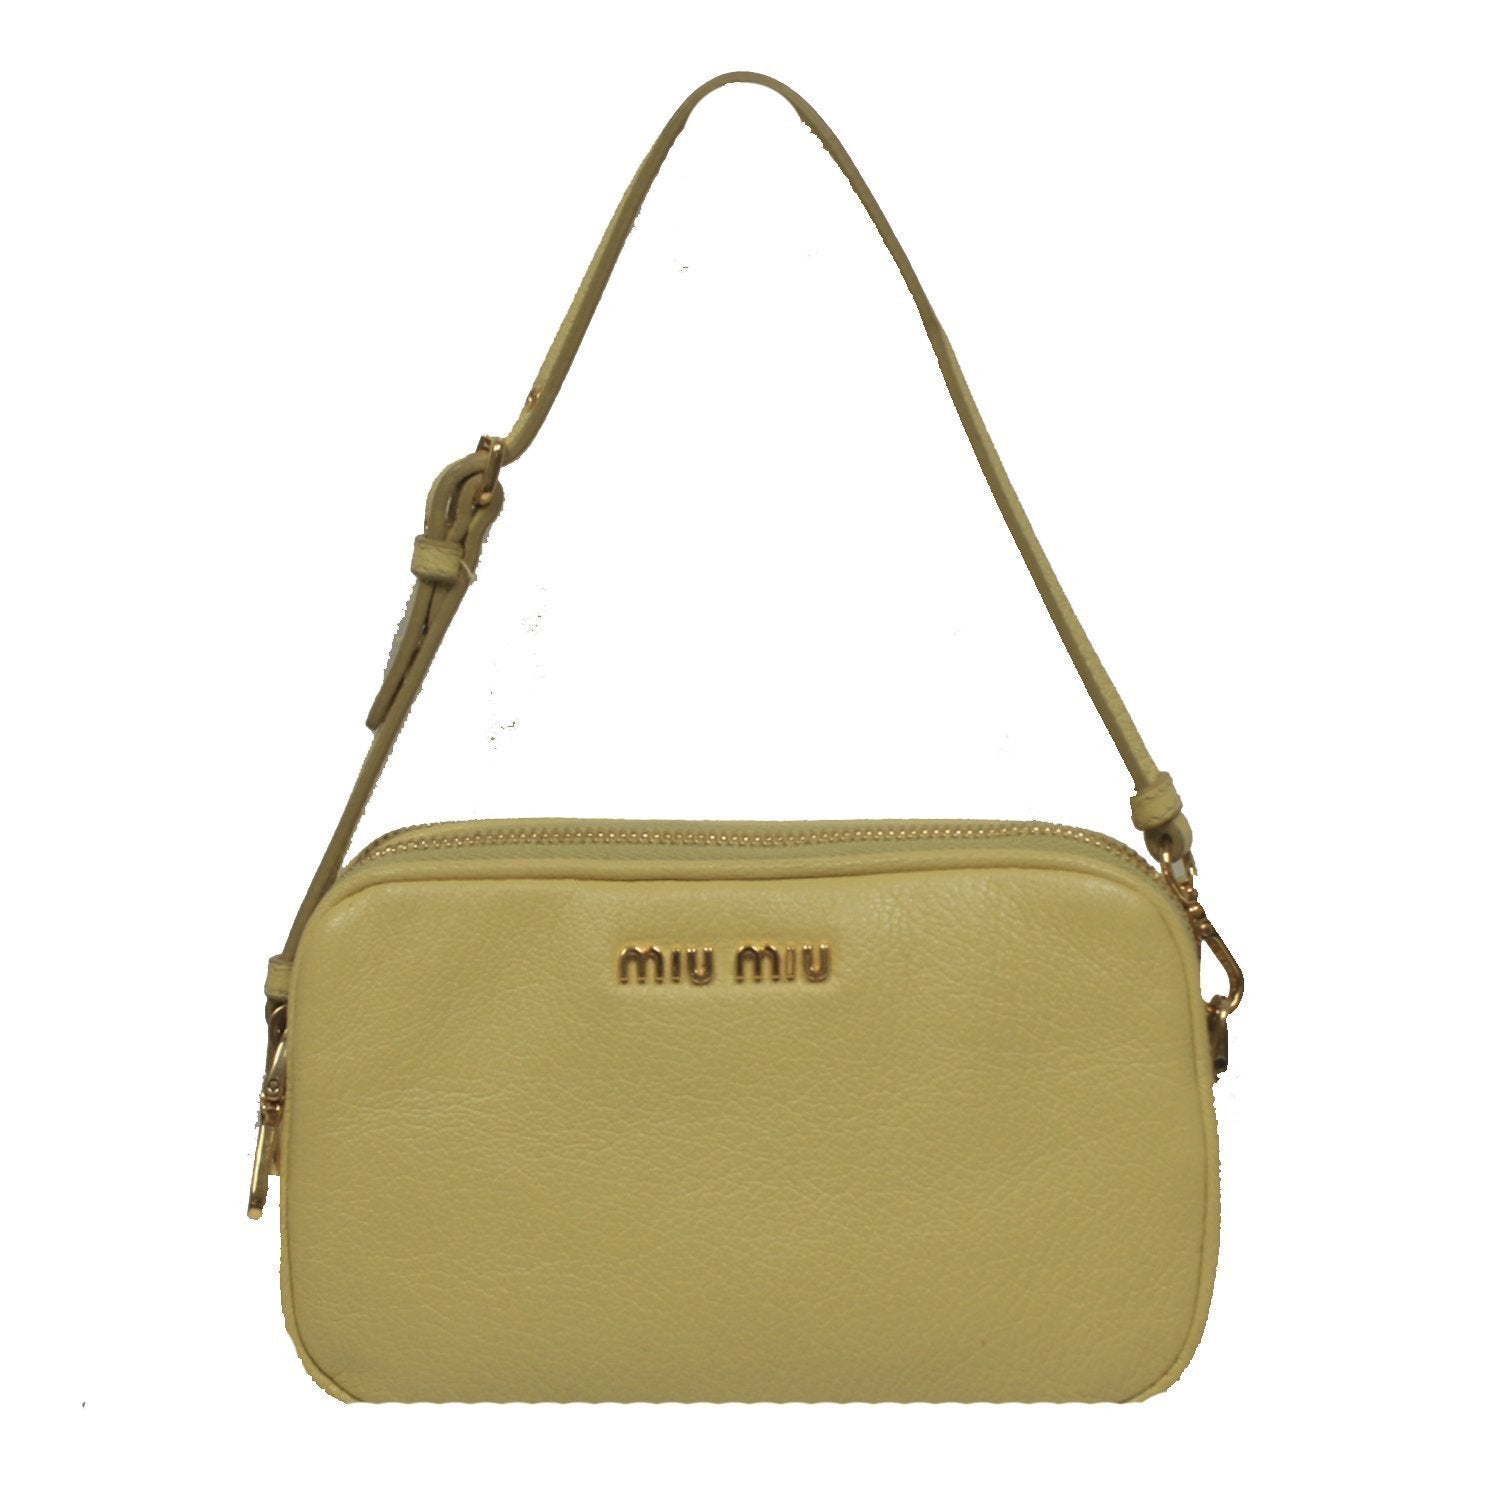 Miu Miu Prada Classic Women's Light Yellow Leather Wristlet Bag 5ARH02